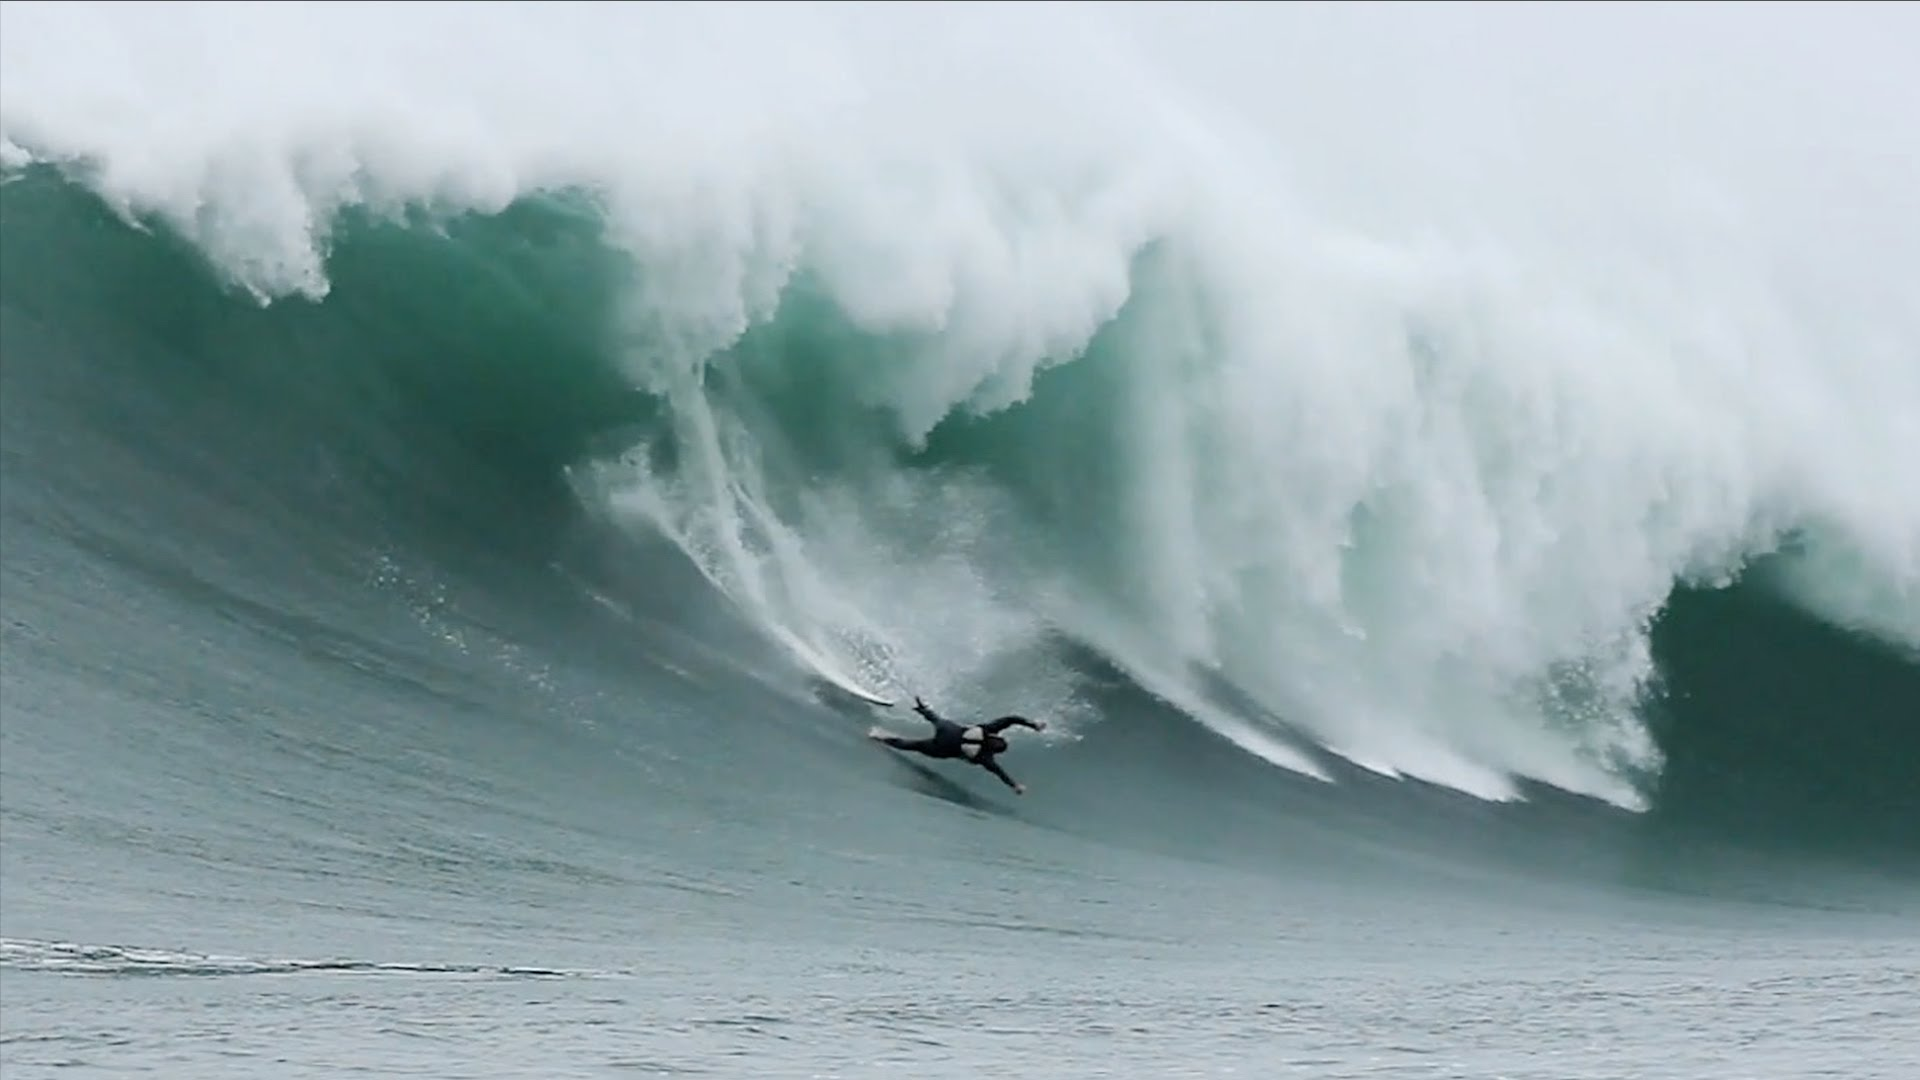 Marcos Monteiro at El Buey – 2015 Wipeout of the Year Entry